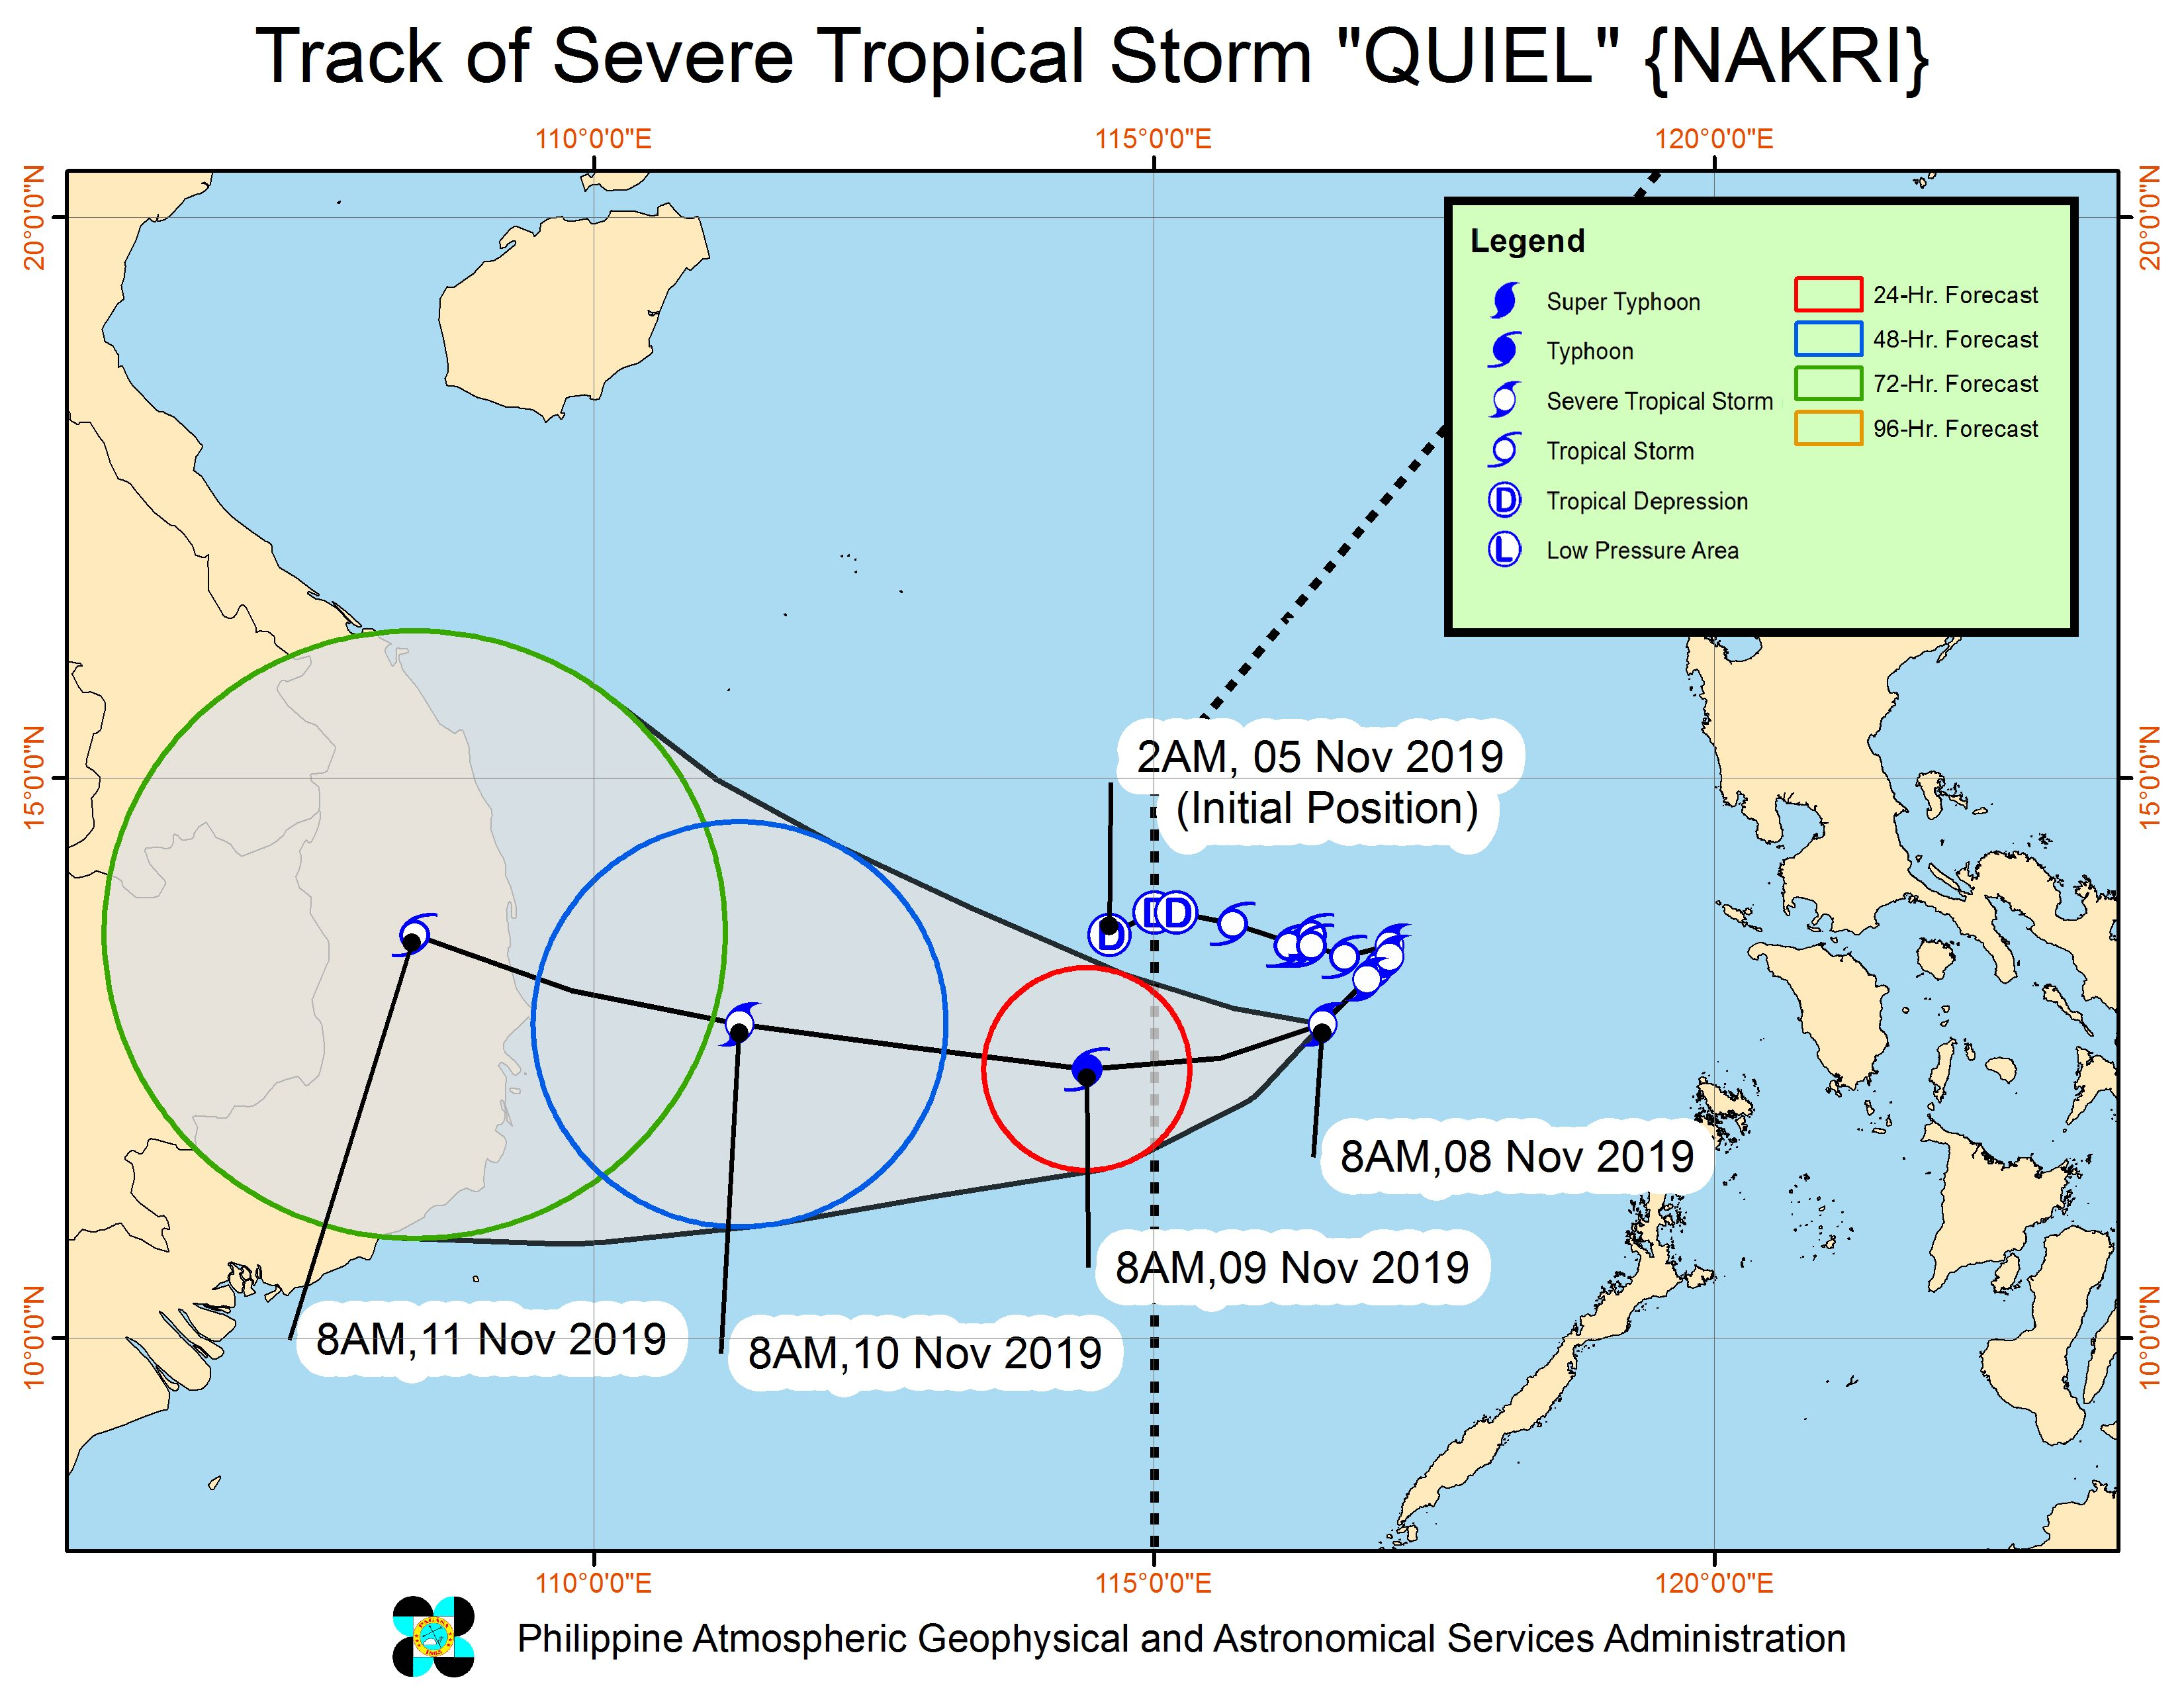 Forecast track of Severe Tropical Storm Quiel (Nakri) as of November 8, 2019, 11 am. Image from PAGASA